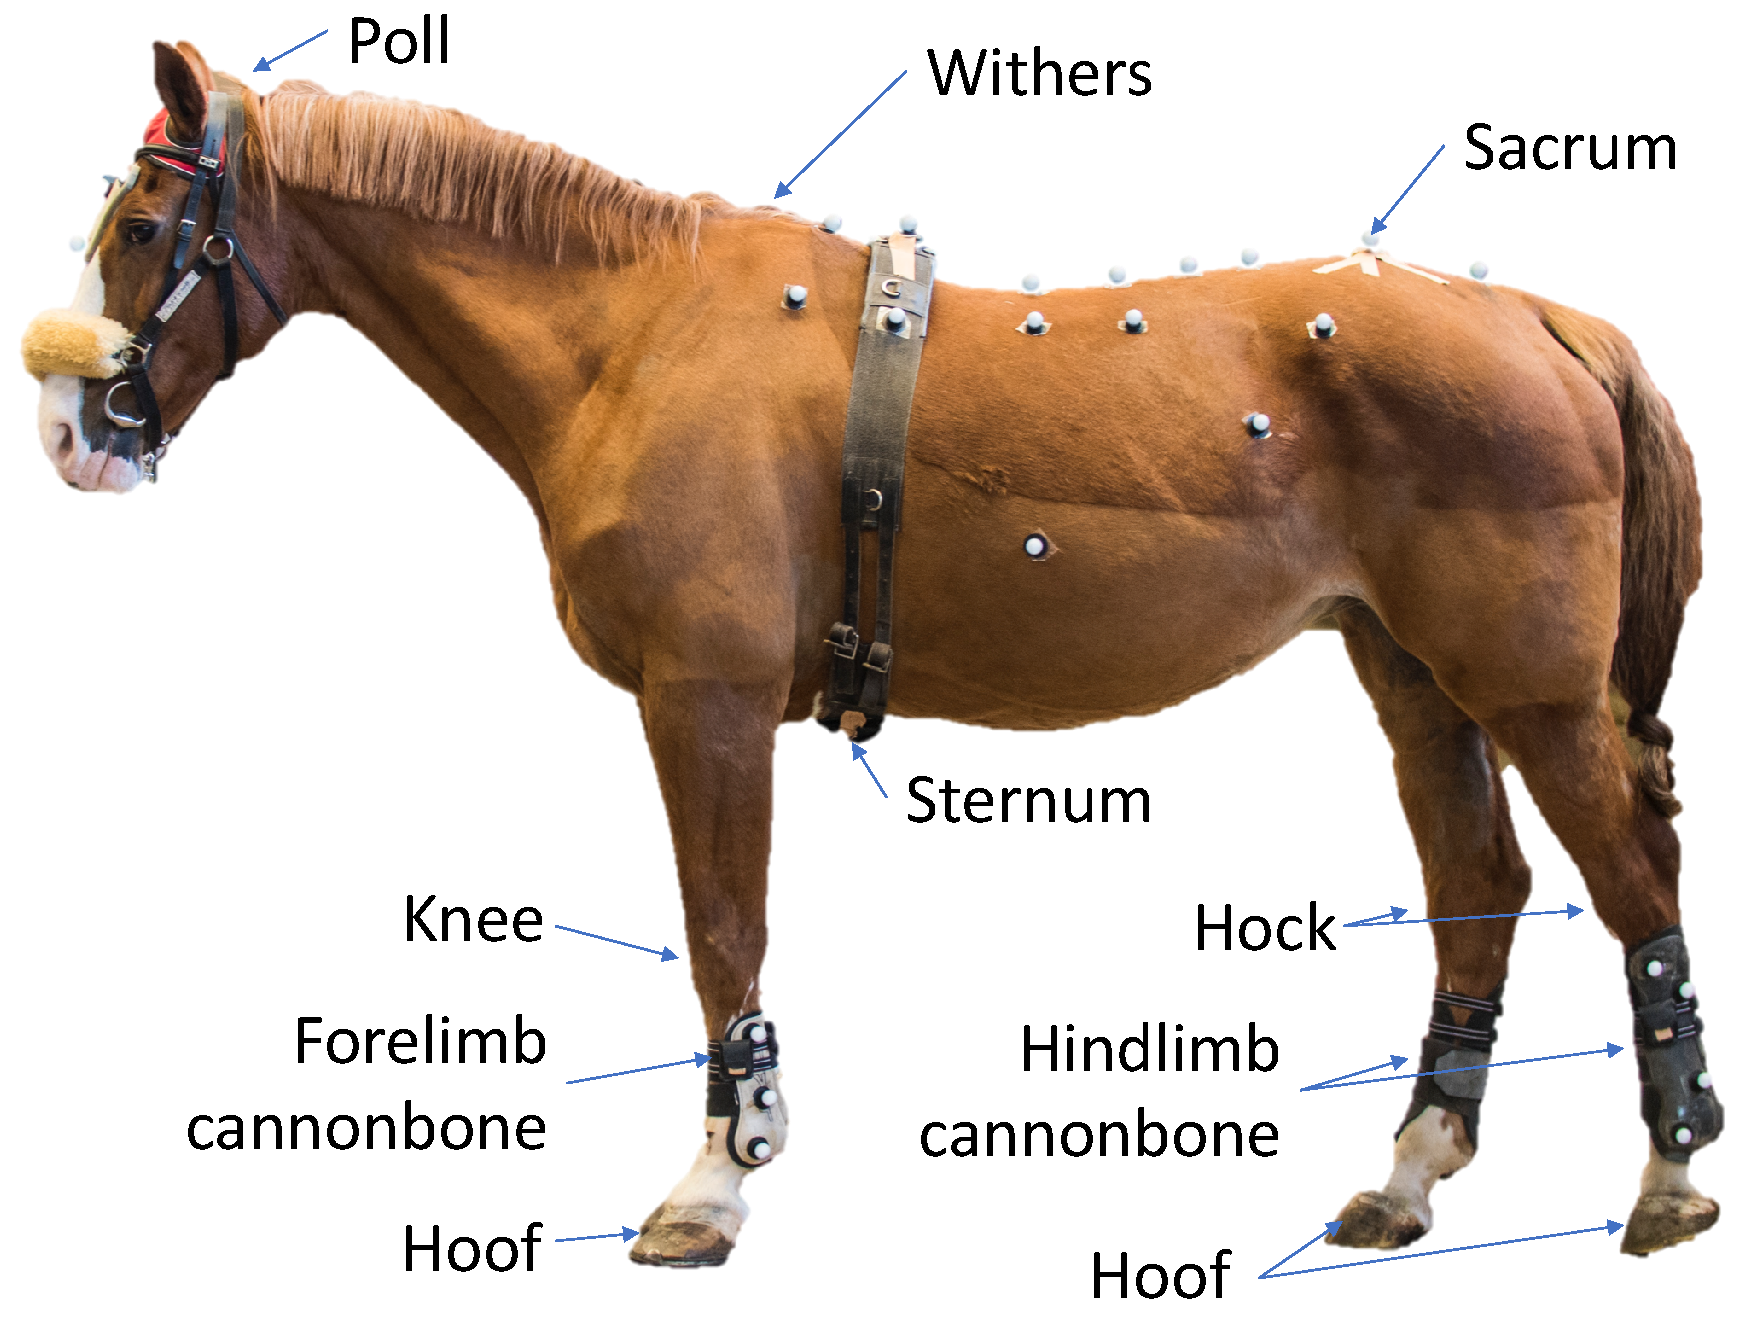 Sensors Free Full Text Equimoves A Wireless Networked Inertial Measurement System For Objective Examination Of Horse Gait Html